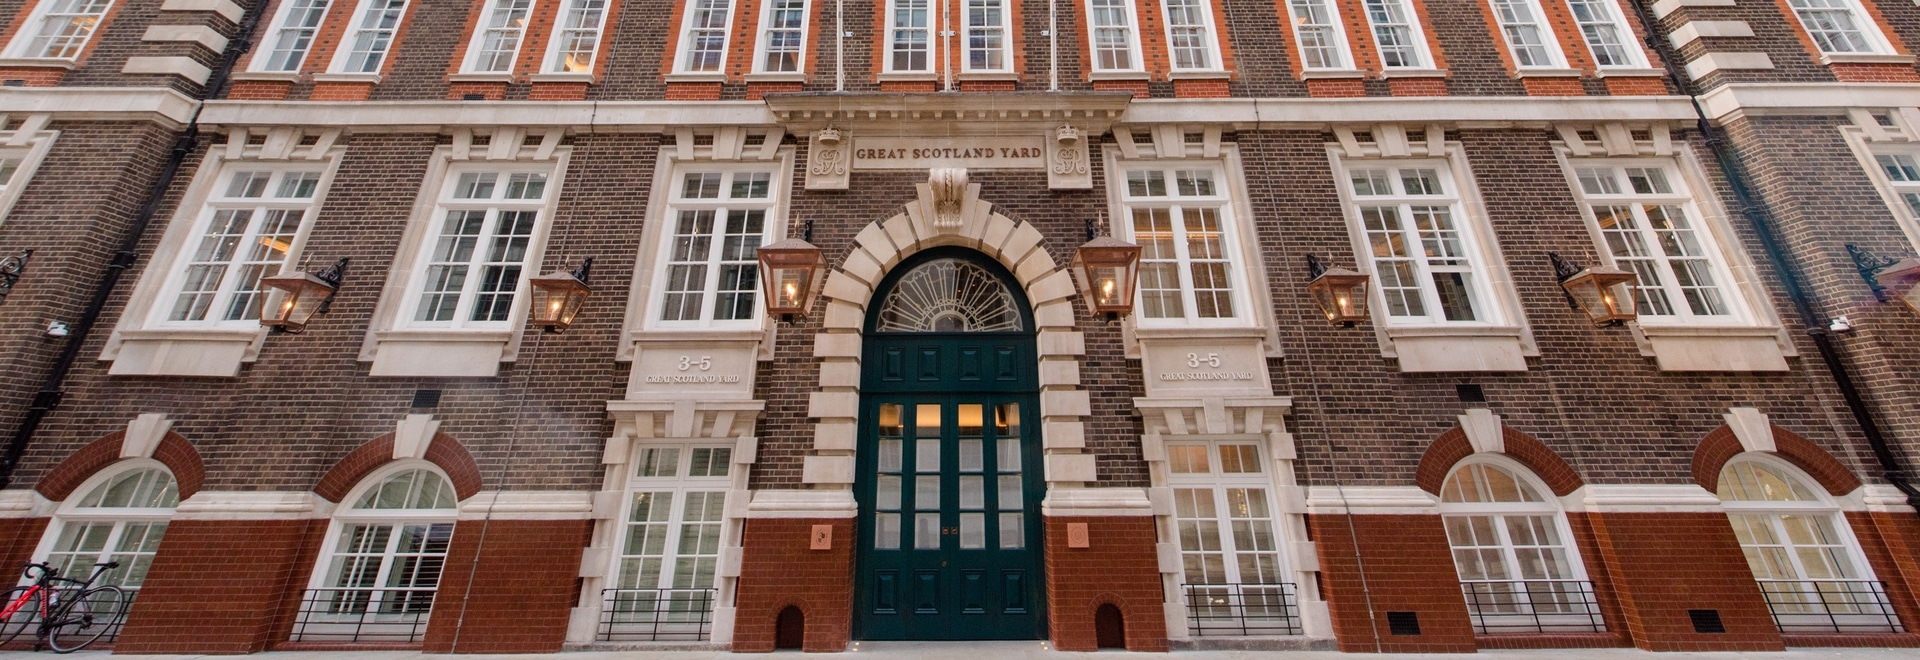 """Lema UK Contract for the new luxury hotel opening of """"Great Scotland Yard"""" by Unbound Collection (Hyatt)"""